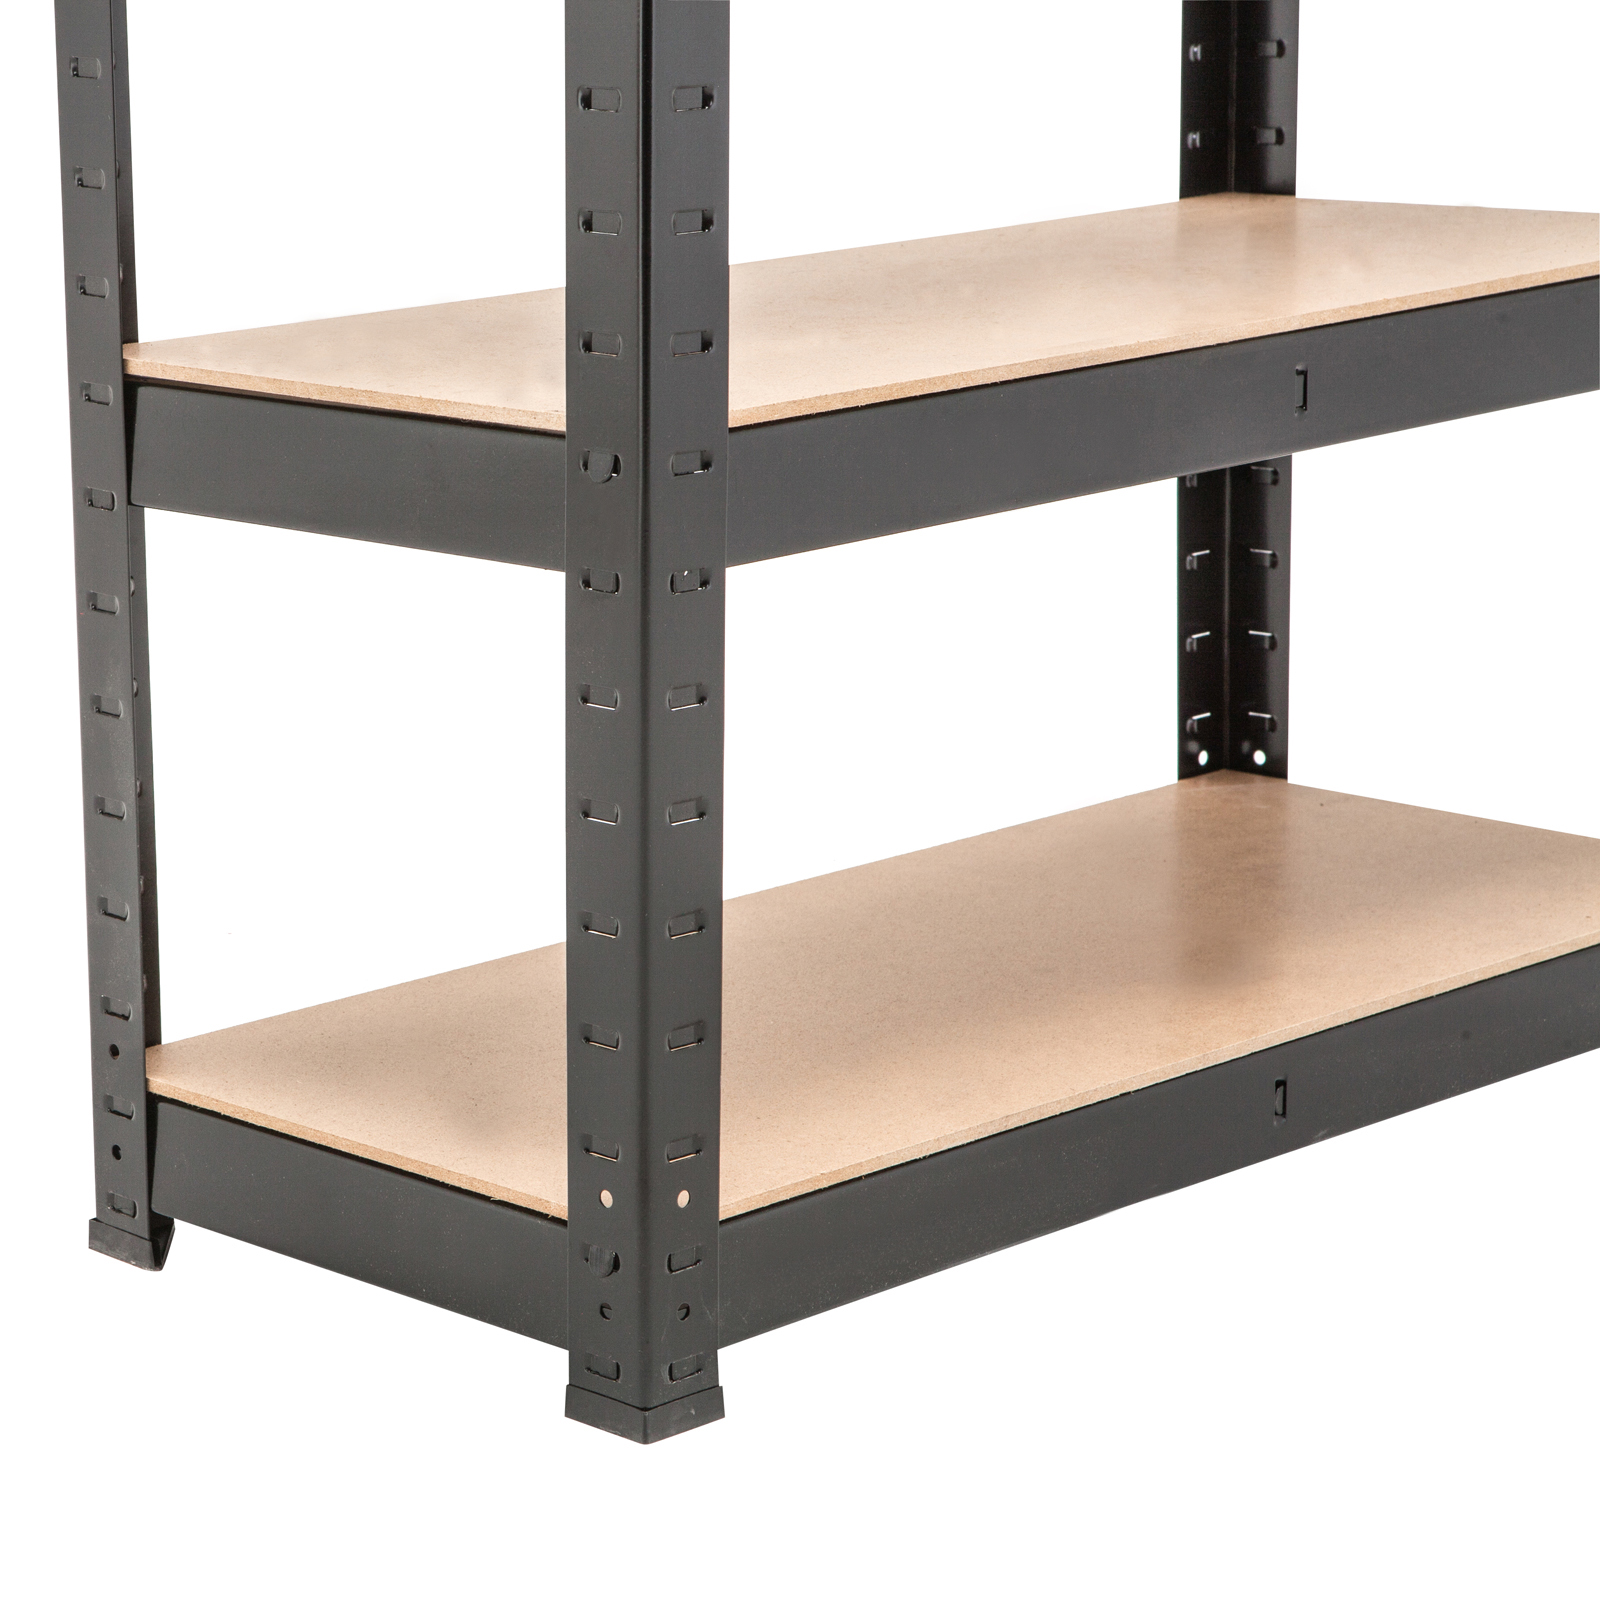 5 tier heavy duty boltless metal black shelving storage. Black Bedroom Furniture Sets. Home Design Ideas